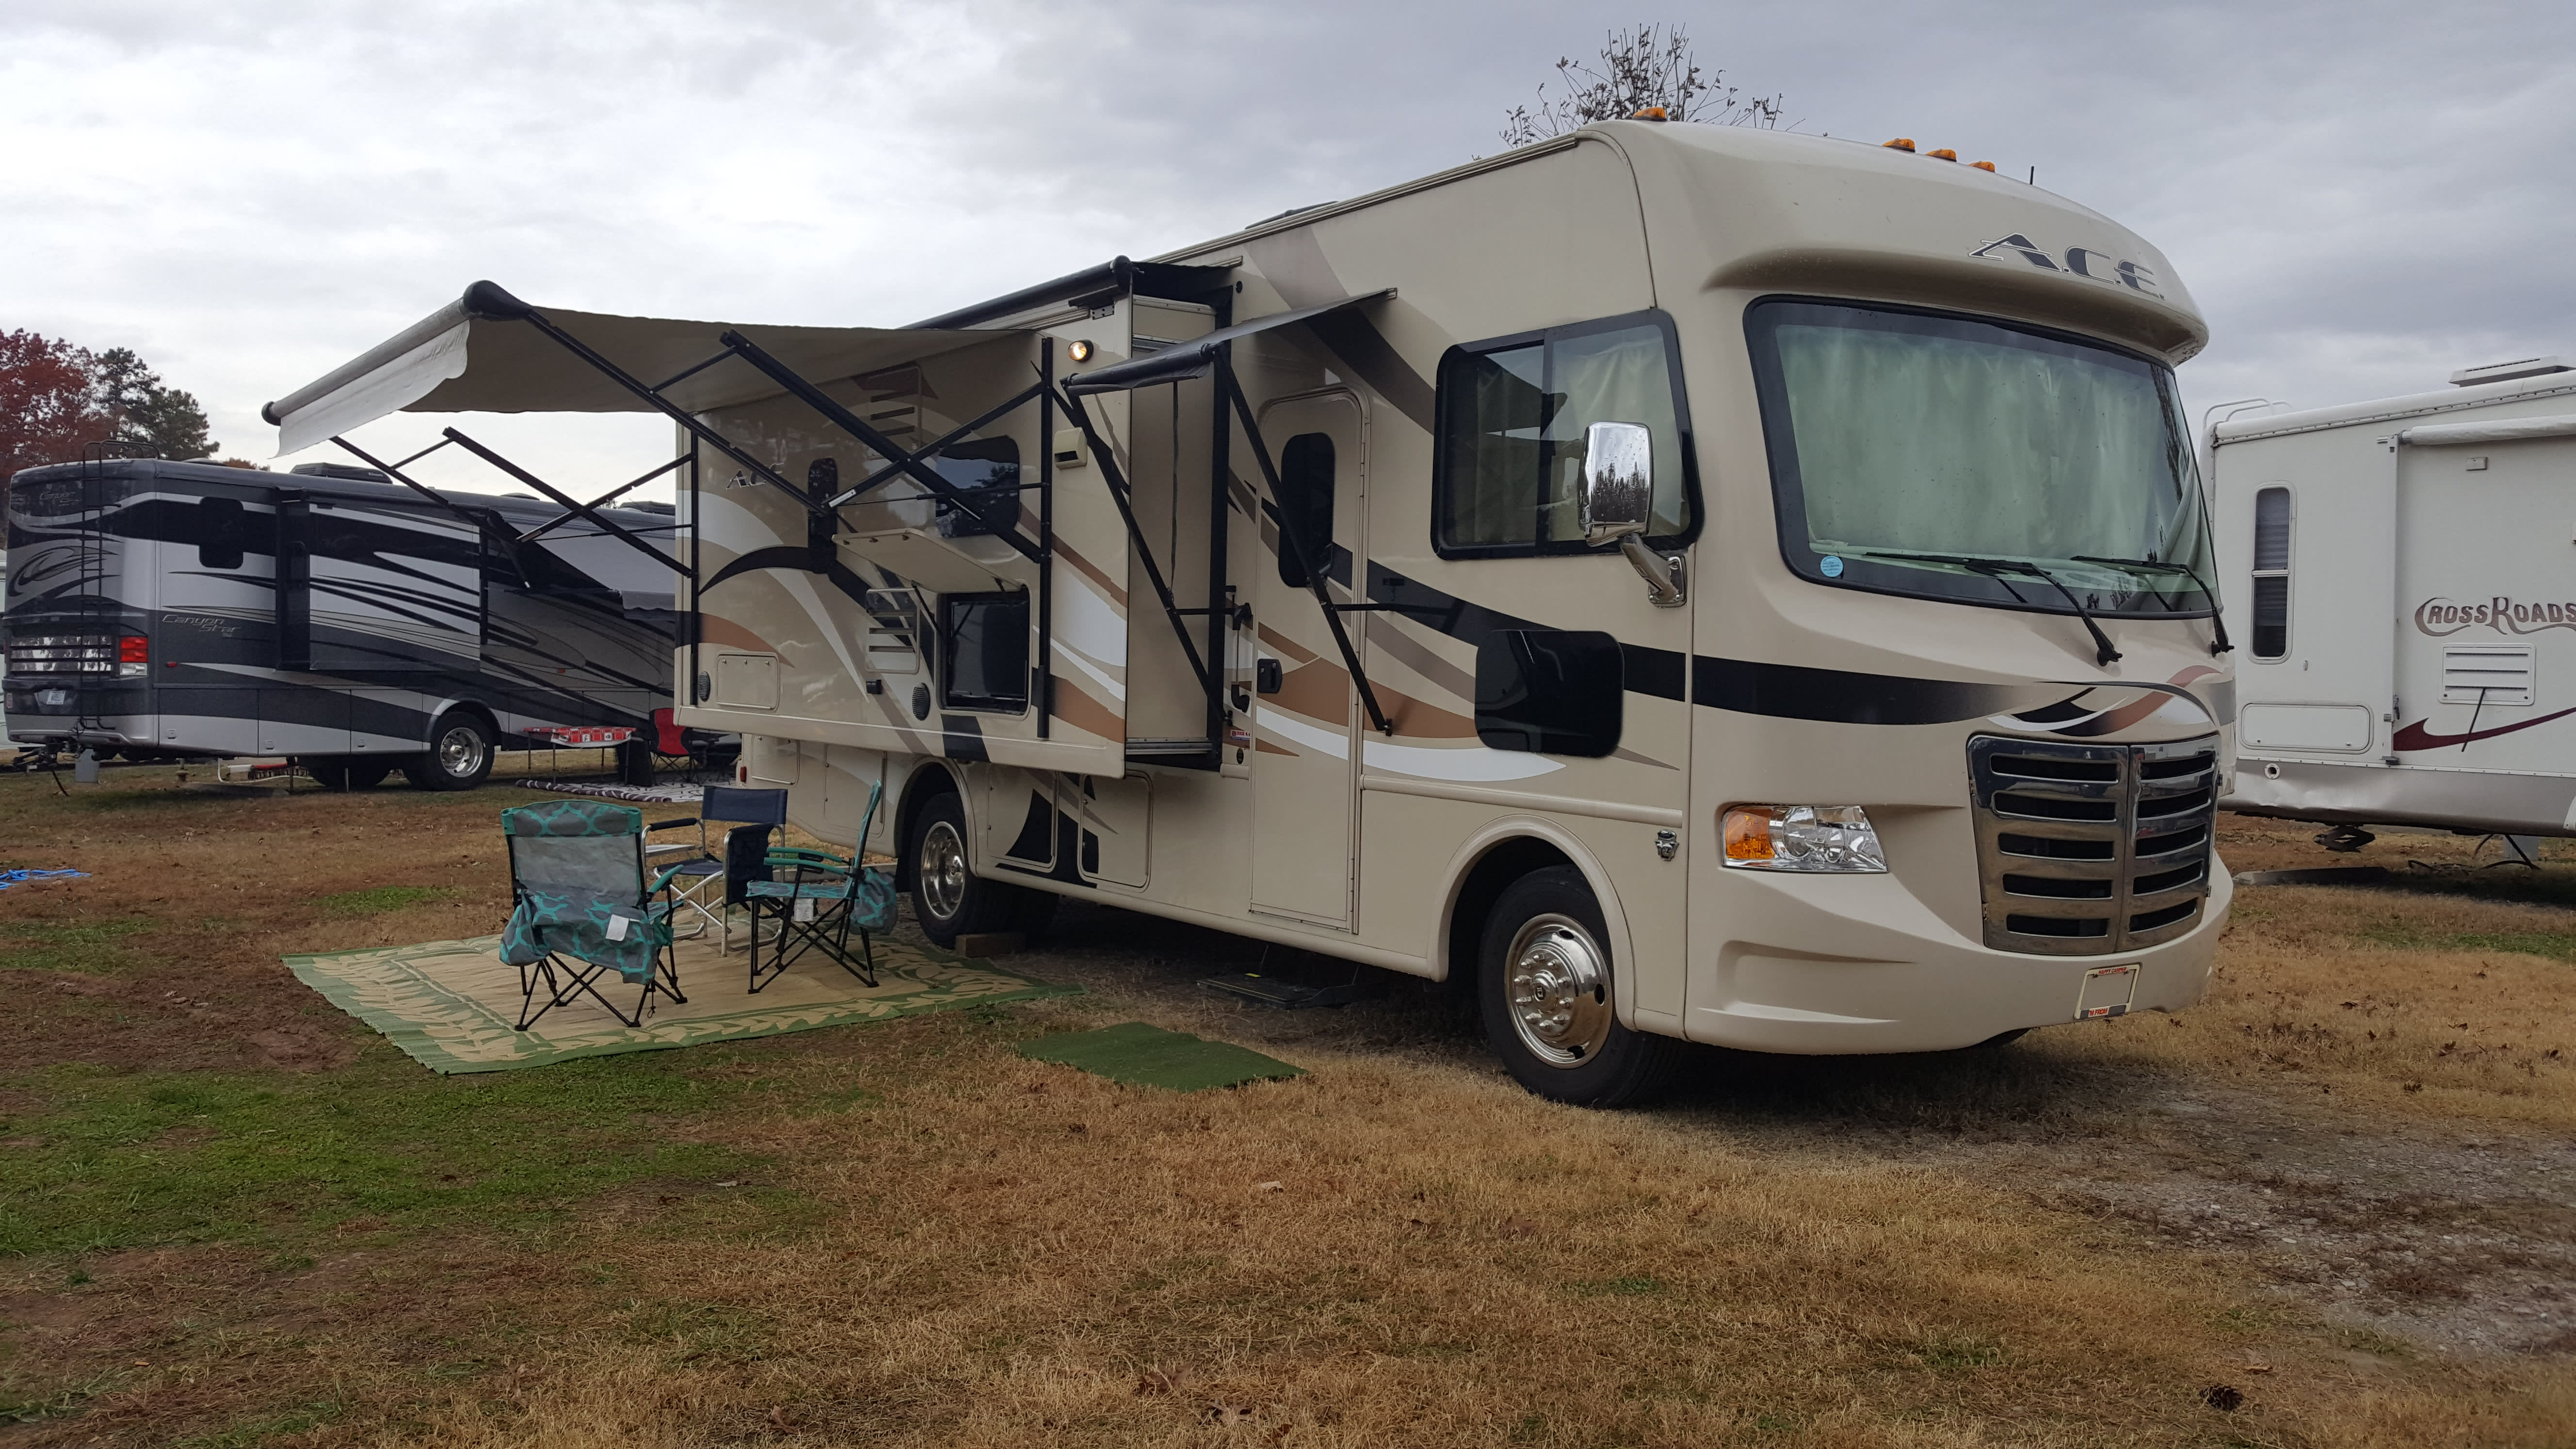 Outdoor TV for cable or air channels and HDMI cable . 5 chairs and mats. Patio and door awning. . Thor Motor Coach A.C.E 27.1 2015